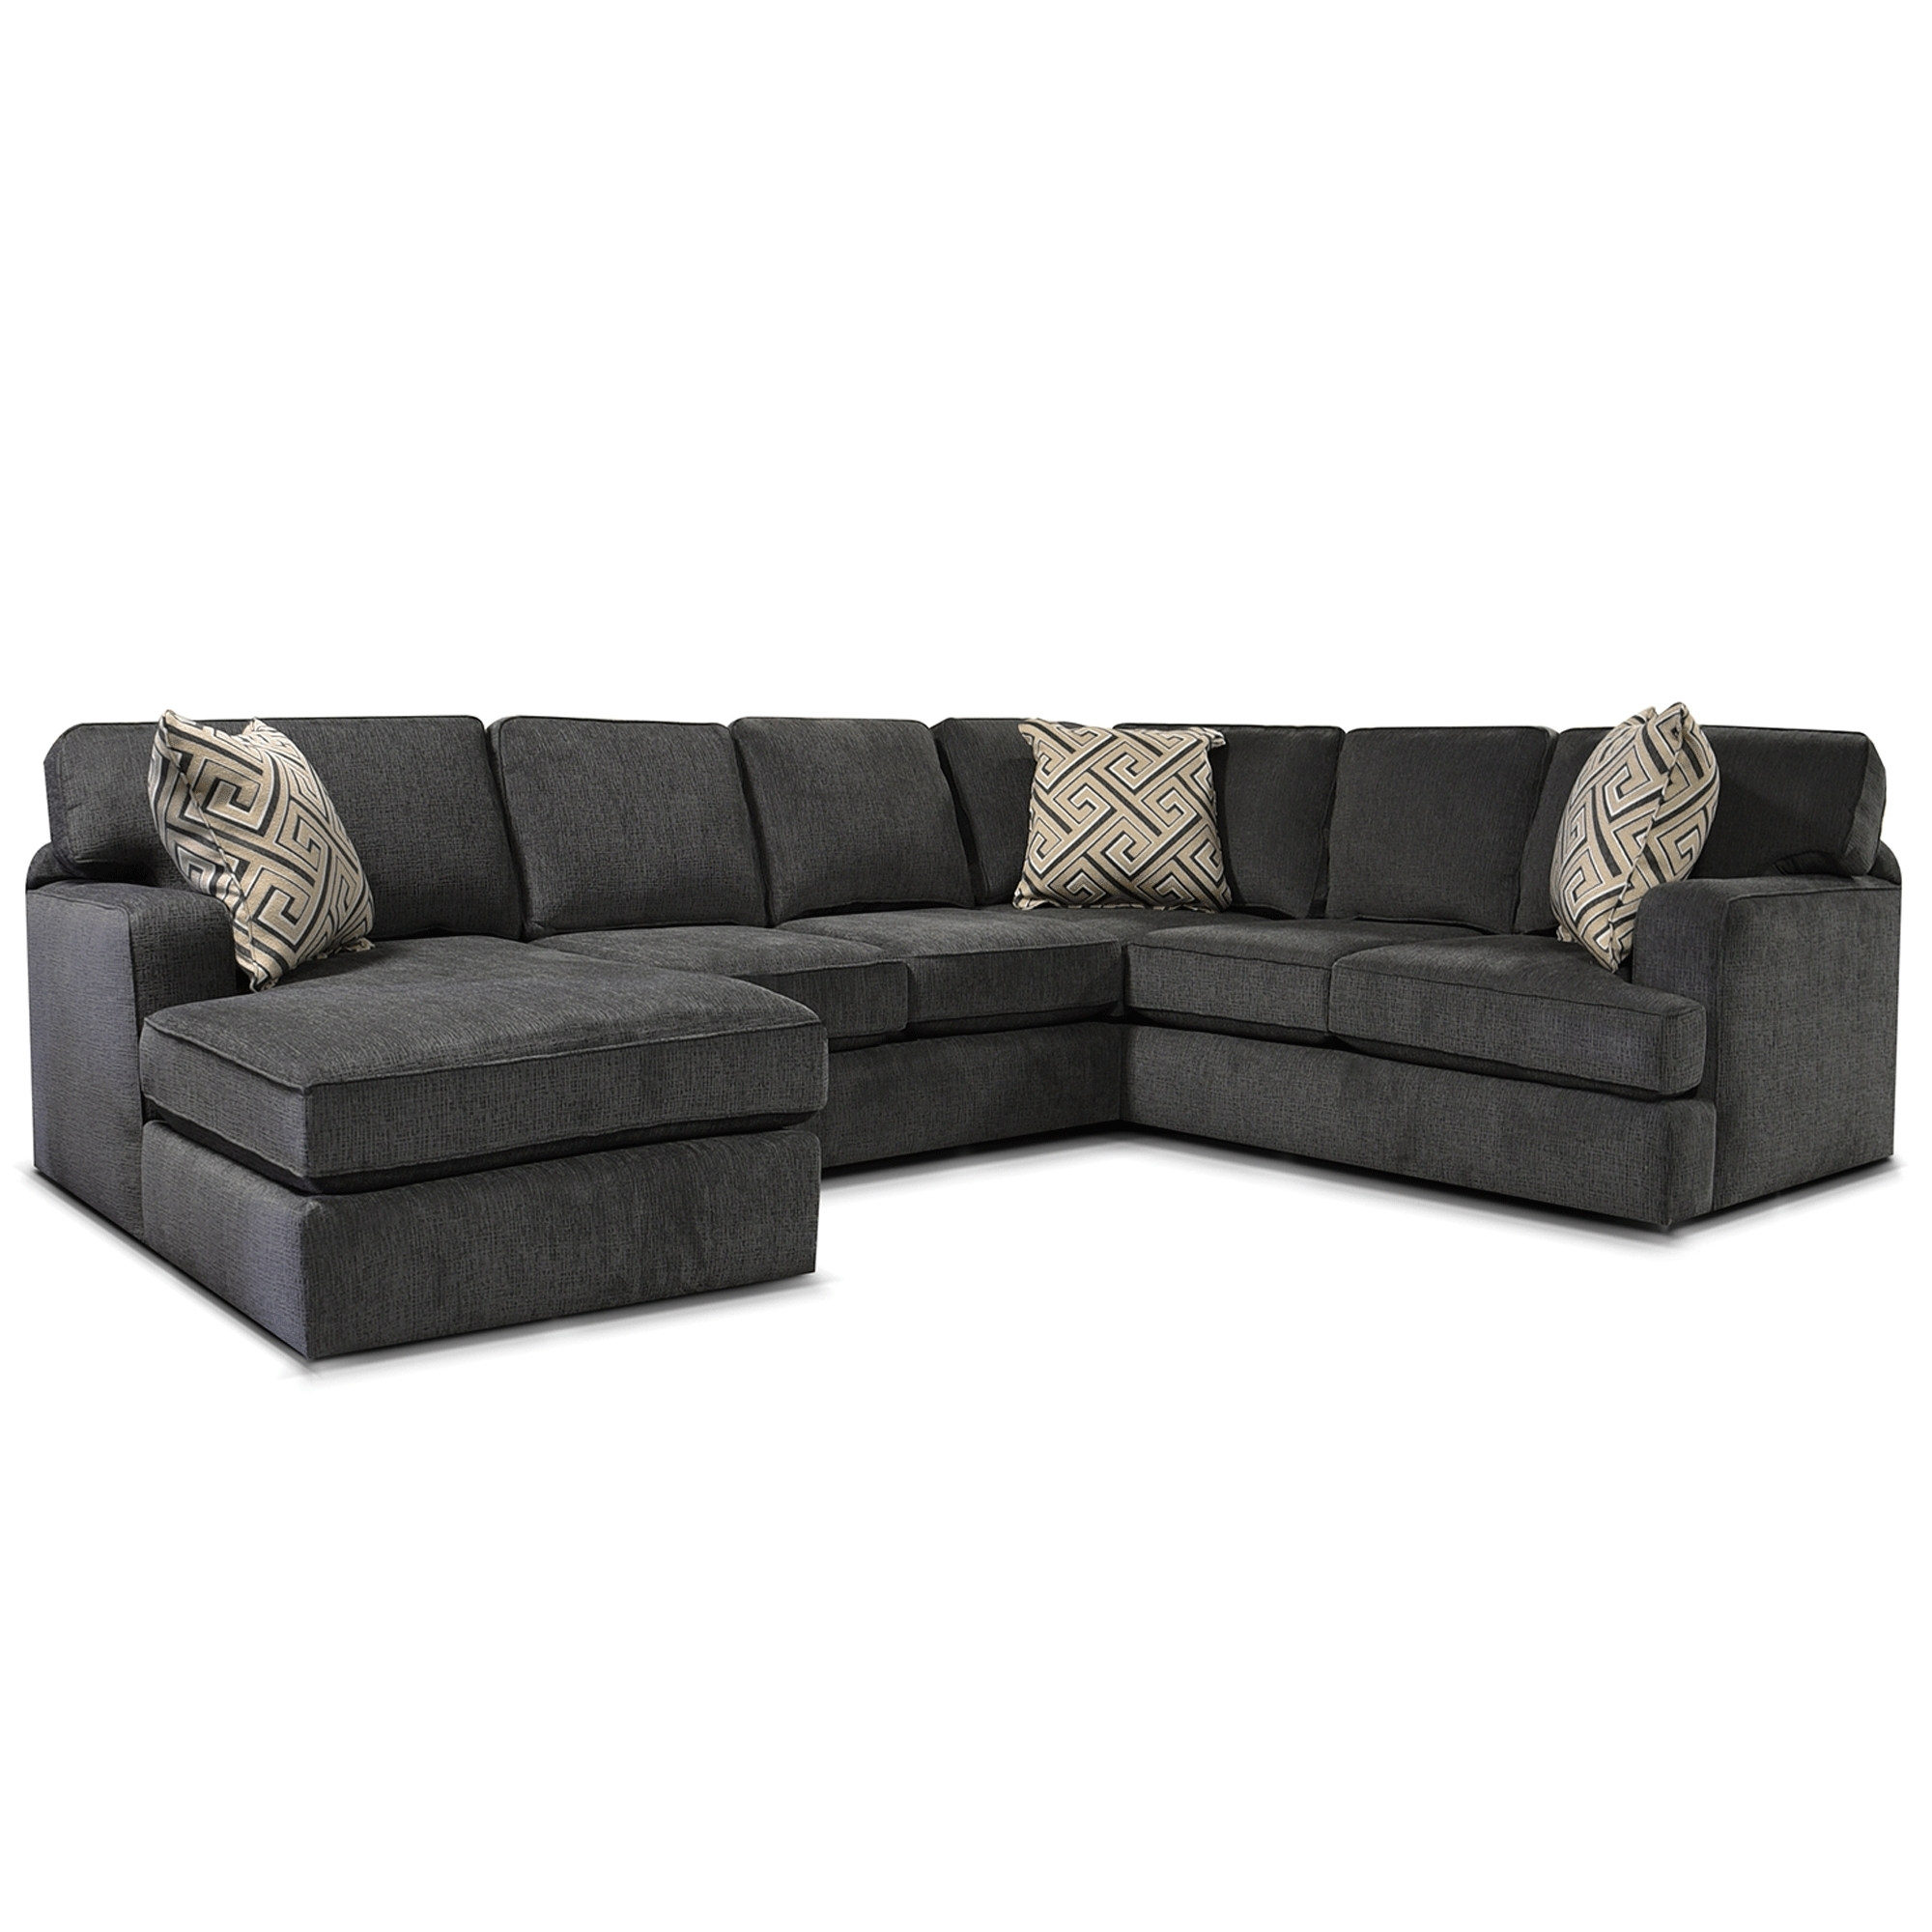 Rouse 3 Piece Sectional Bernie Phyl S Furniture England Regarding Widely Sofas